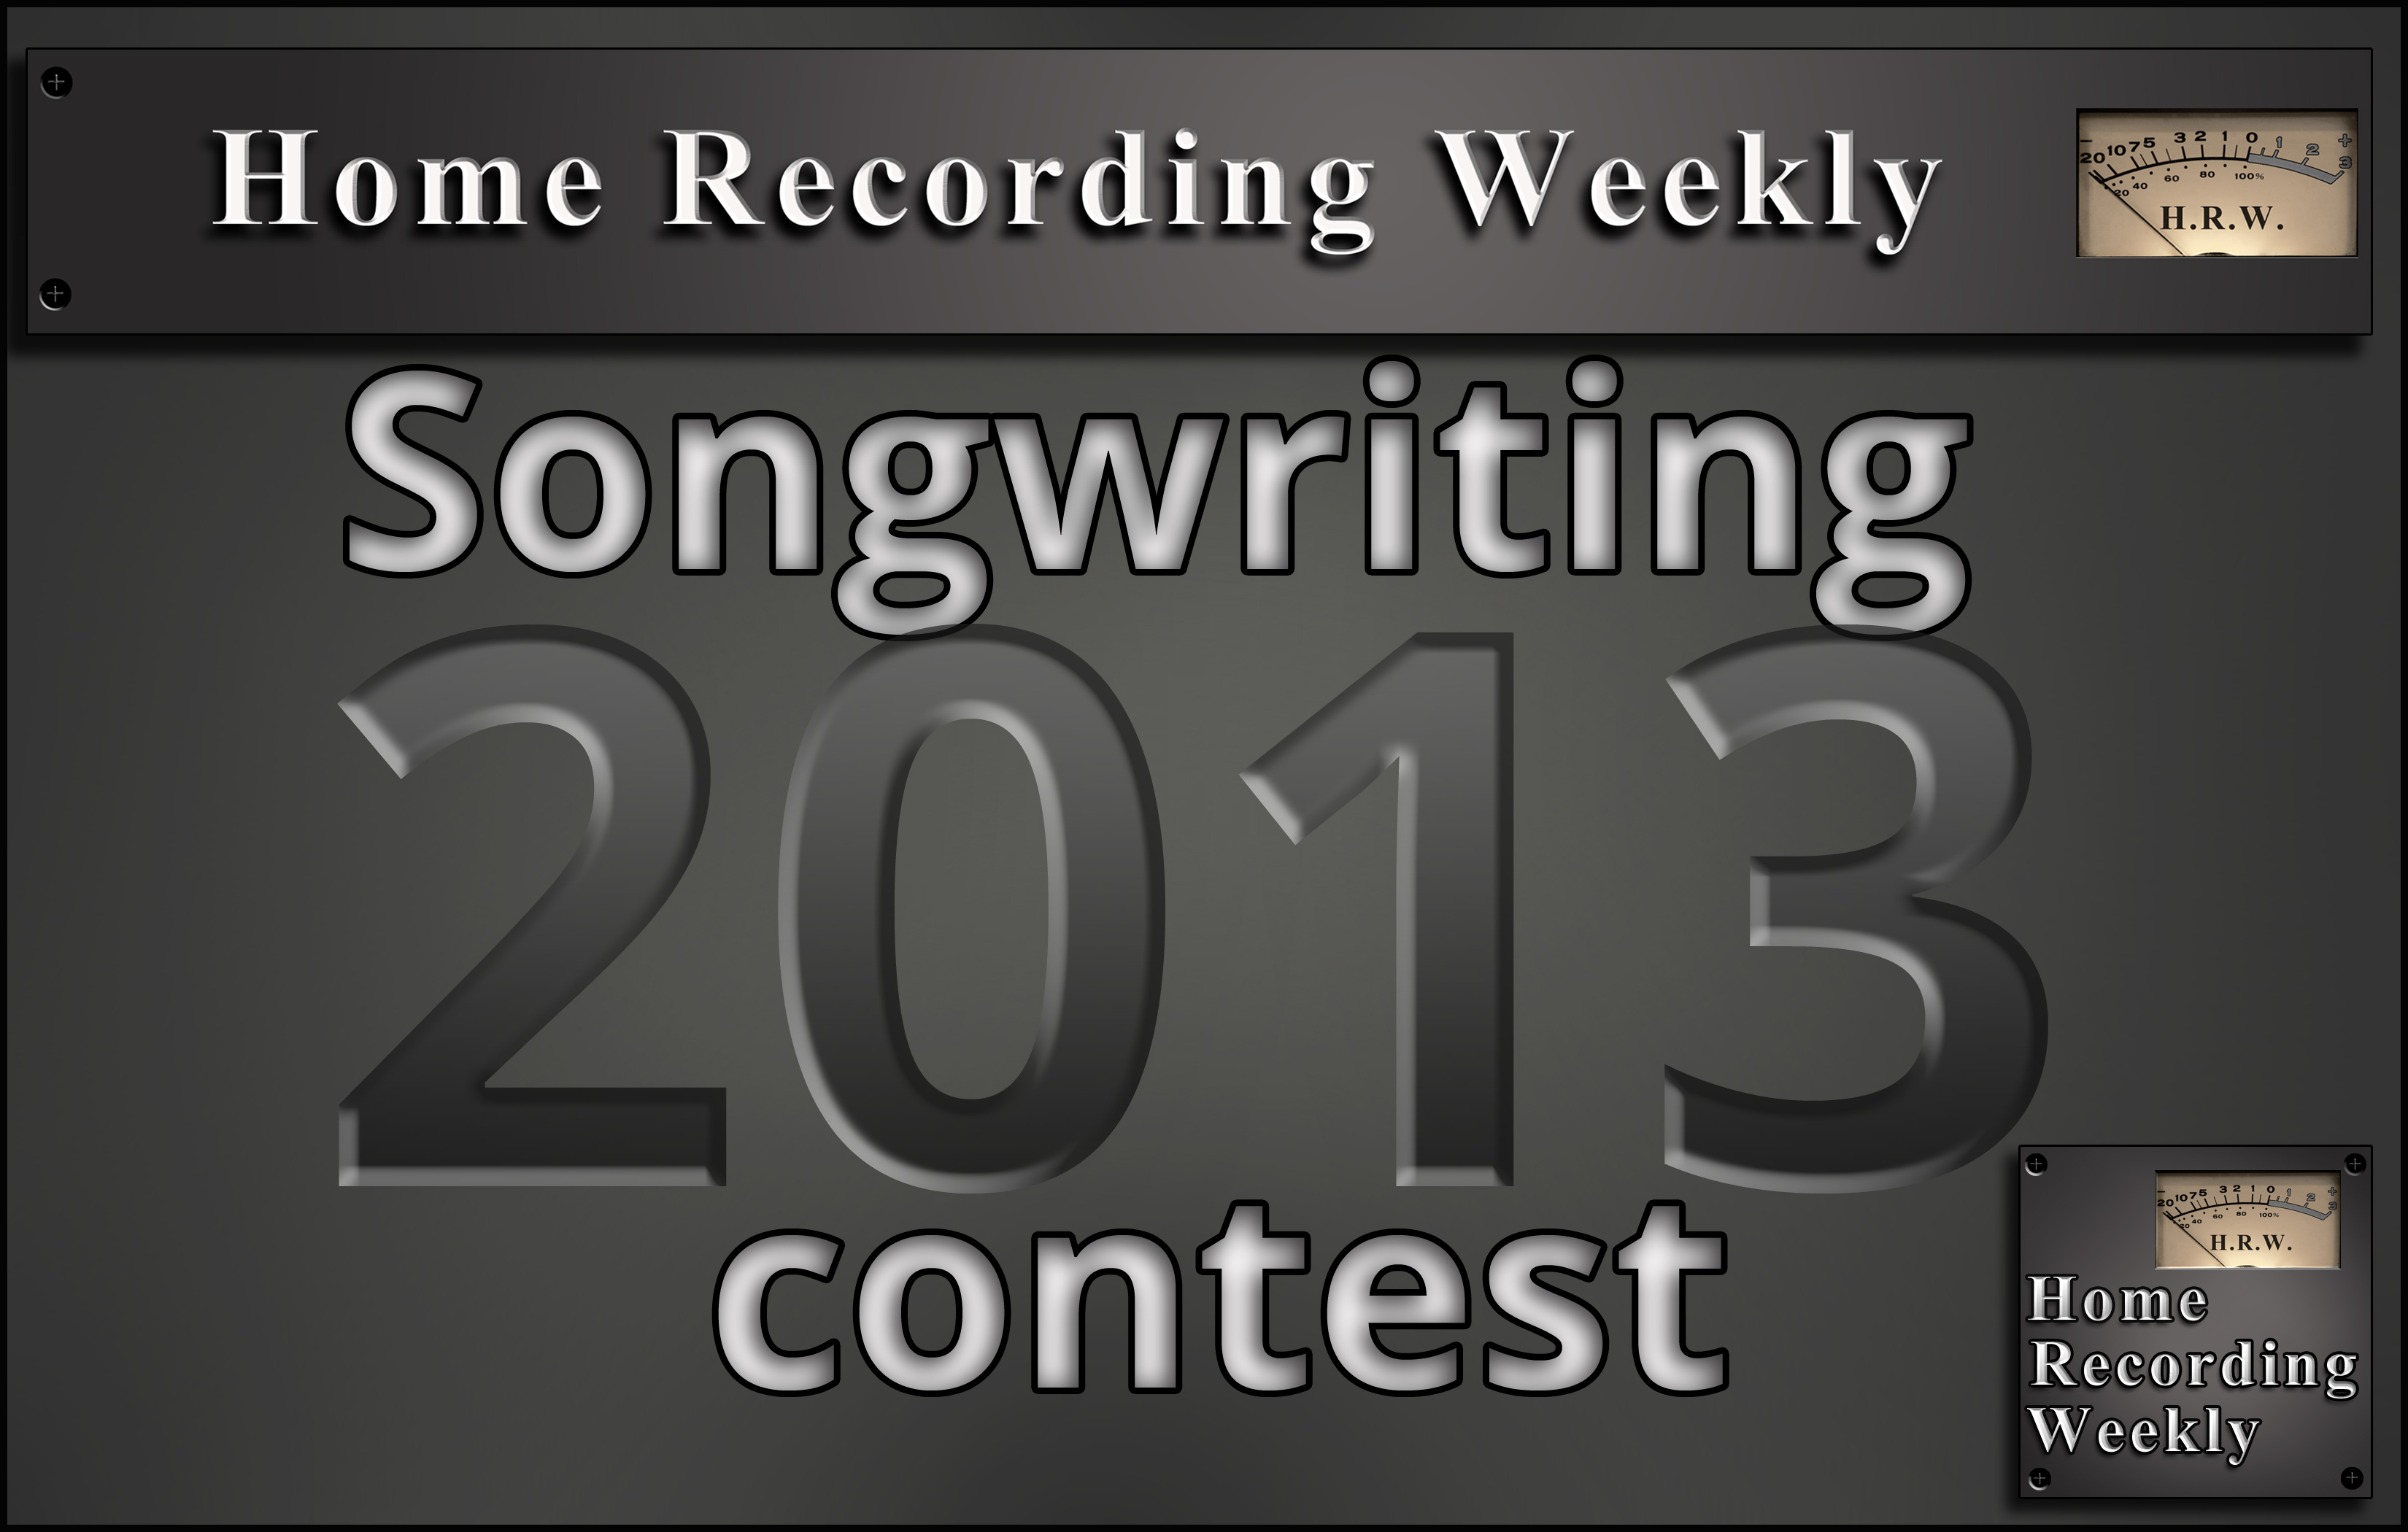 song writing contest We have written songs for over two decades, this is our personal victoryalannah myles & nancy simmons, winner of the 15th annual usa songwriting competition (2010) & grammy award winner my name is jennifer adan and i used to enter this contest all the time back in the day.